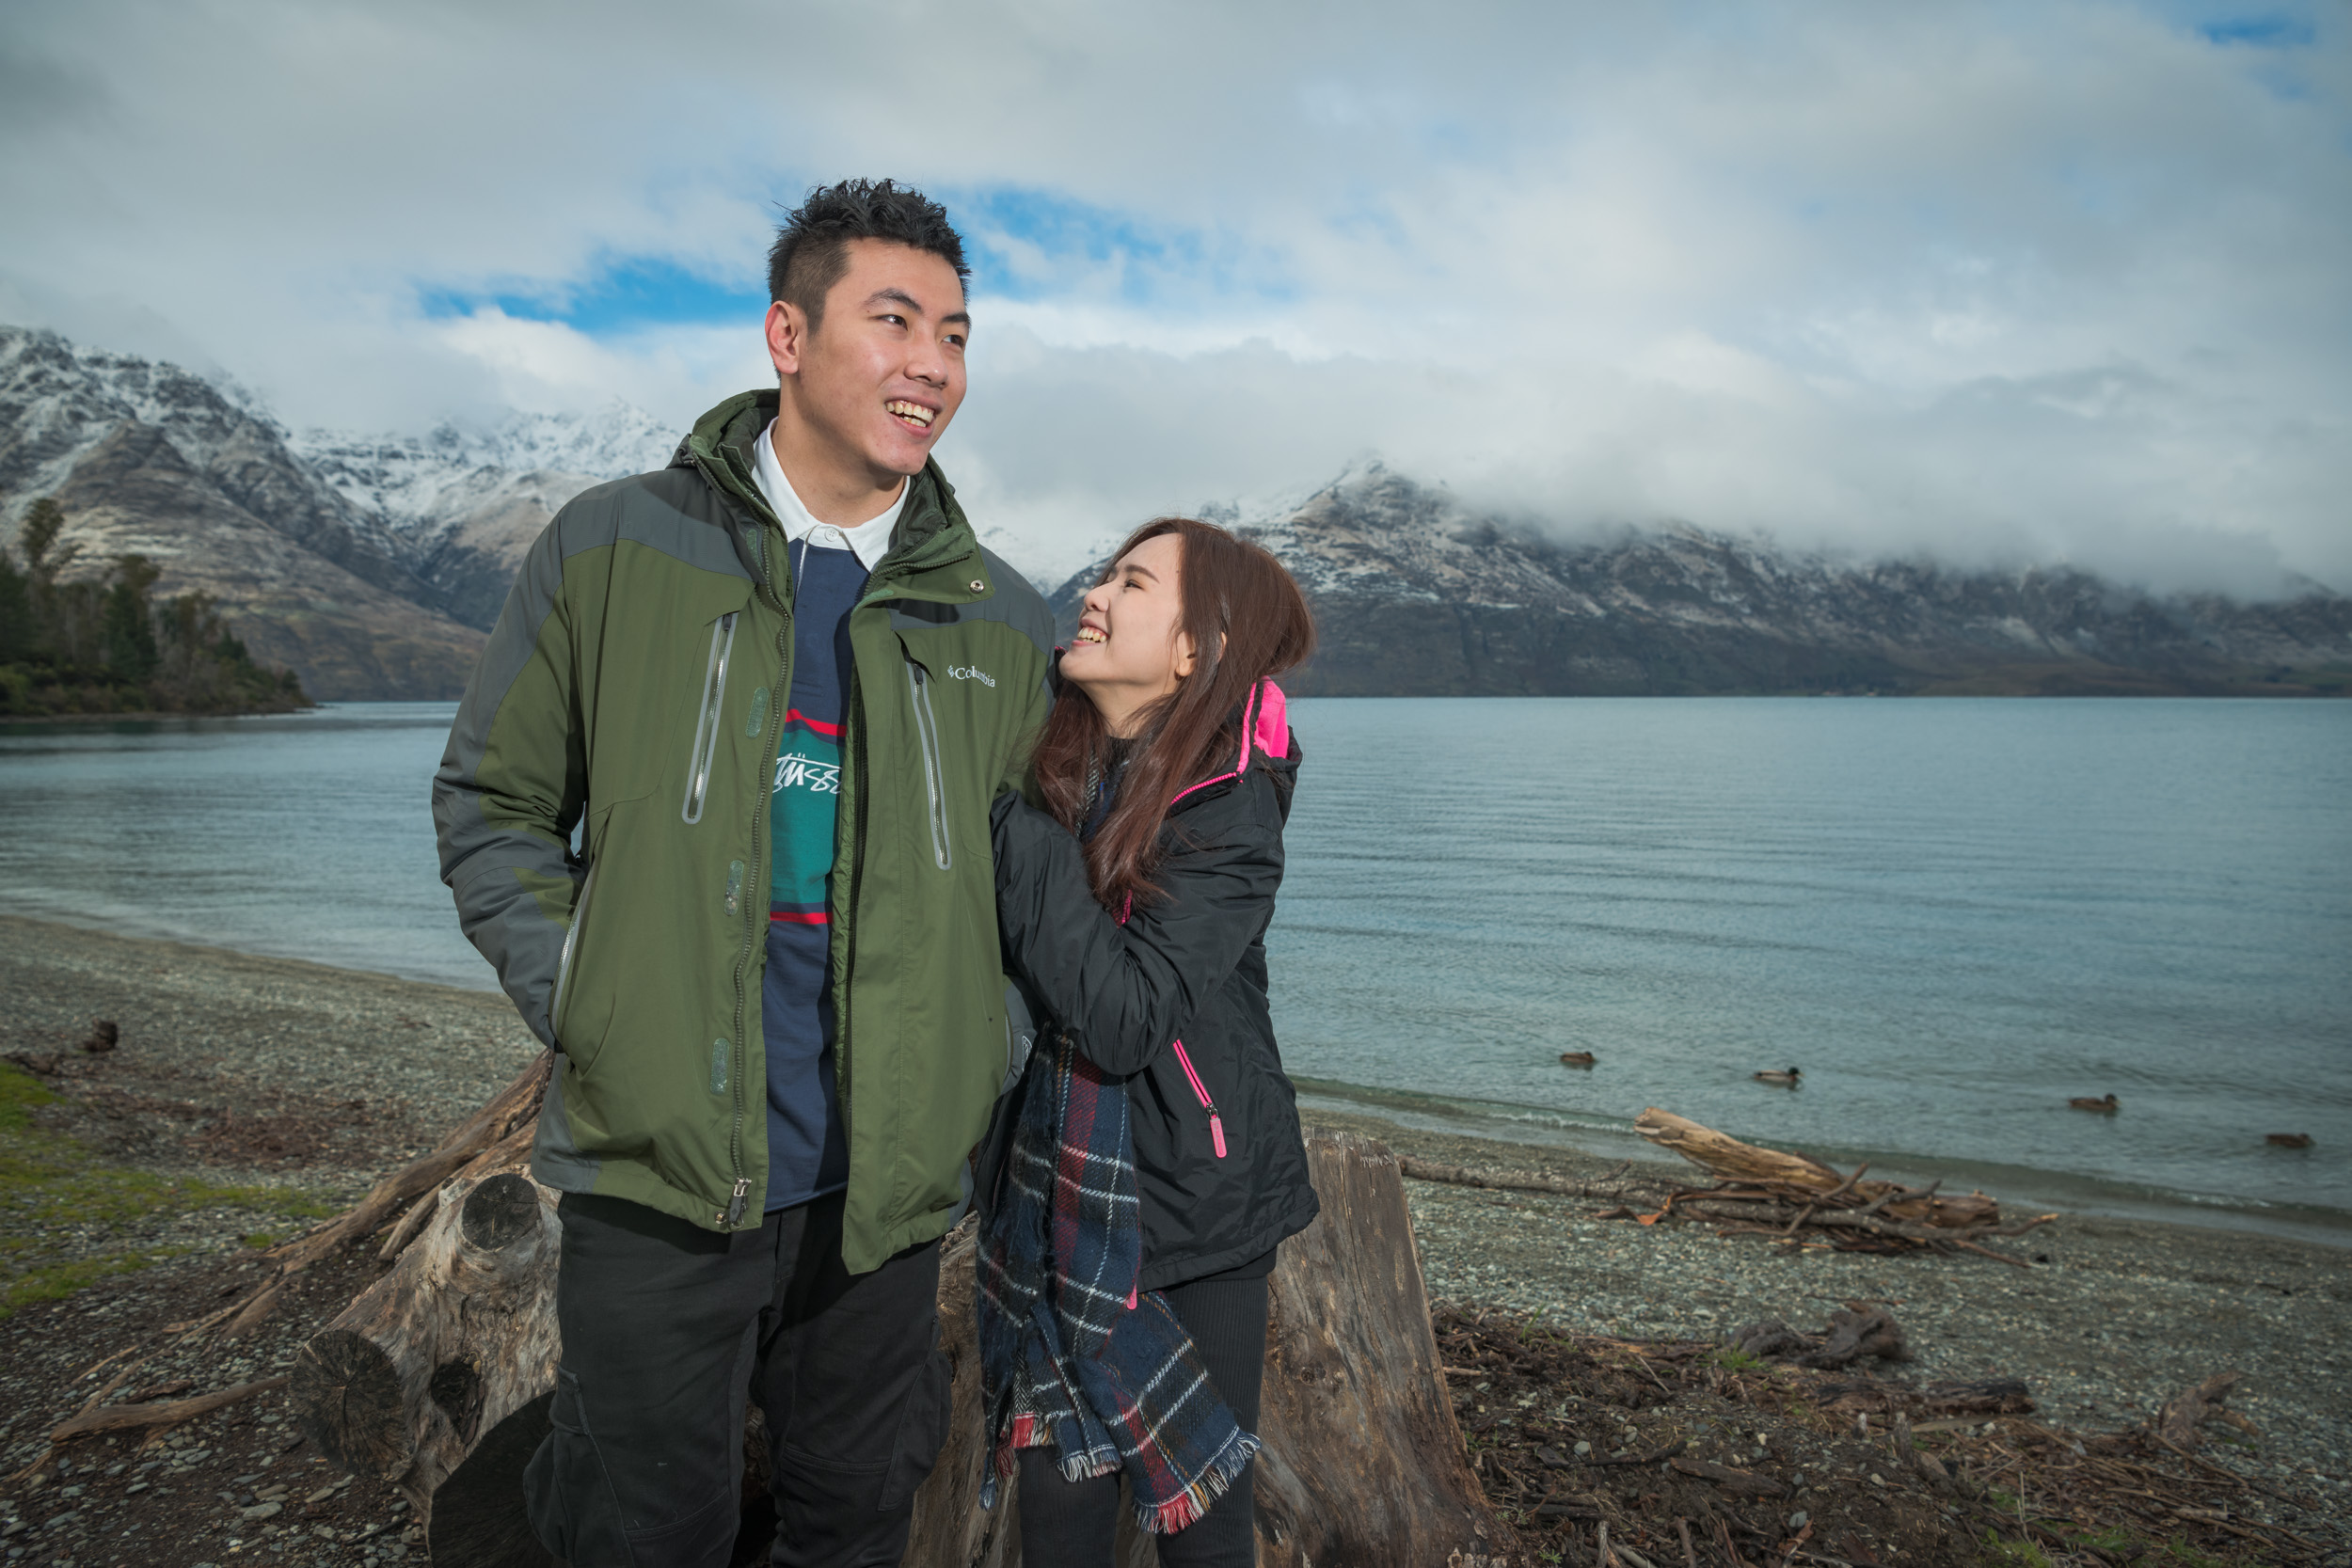 Wilson Bay - Queenstown NZ - The perfect place to get used to the camera to get the best professional travel photographs